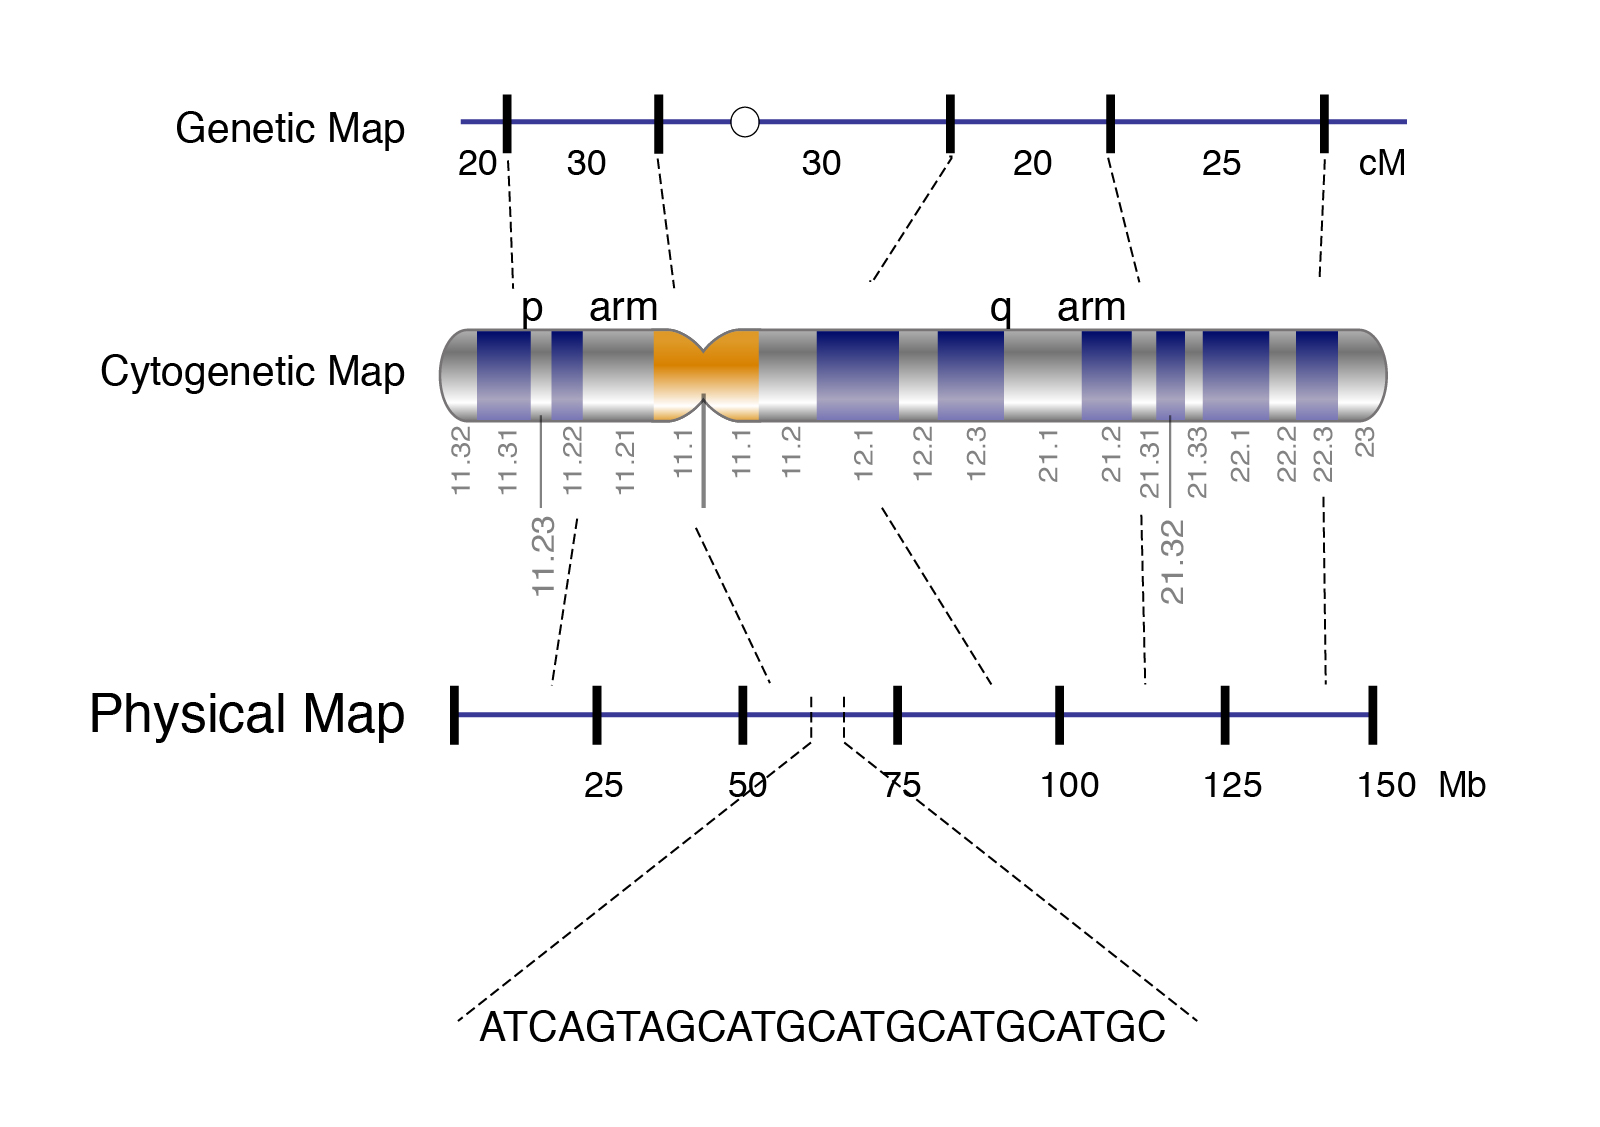 Physical Map | Talking Glossary of Genetic Terms | NHGRI on heart map distance, genetic distance nei, cavalli-sforza genetic distance, linkage maps distance, genetic distance race, world map distance, genetic distance 1,